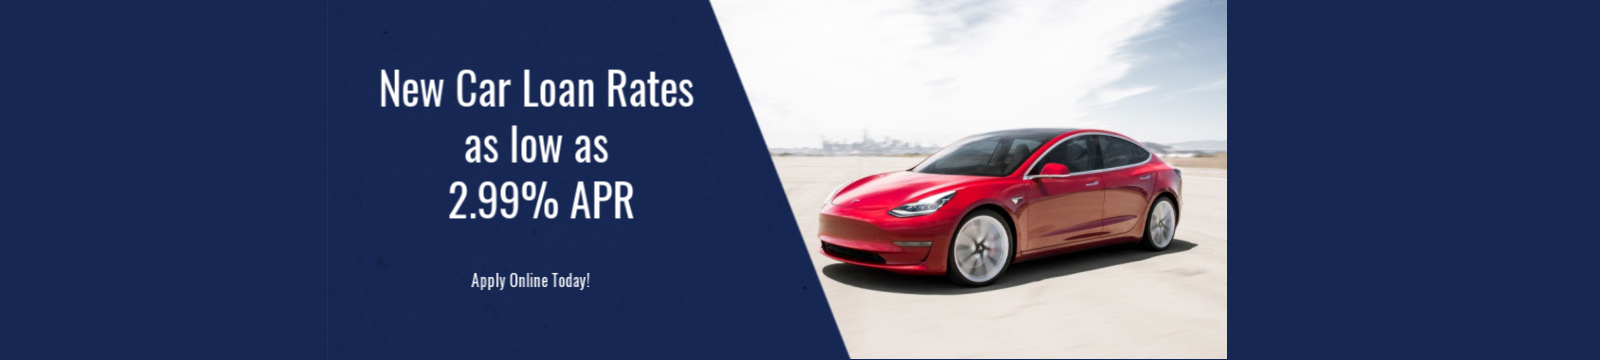 New car loan rates as low as 2.99%